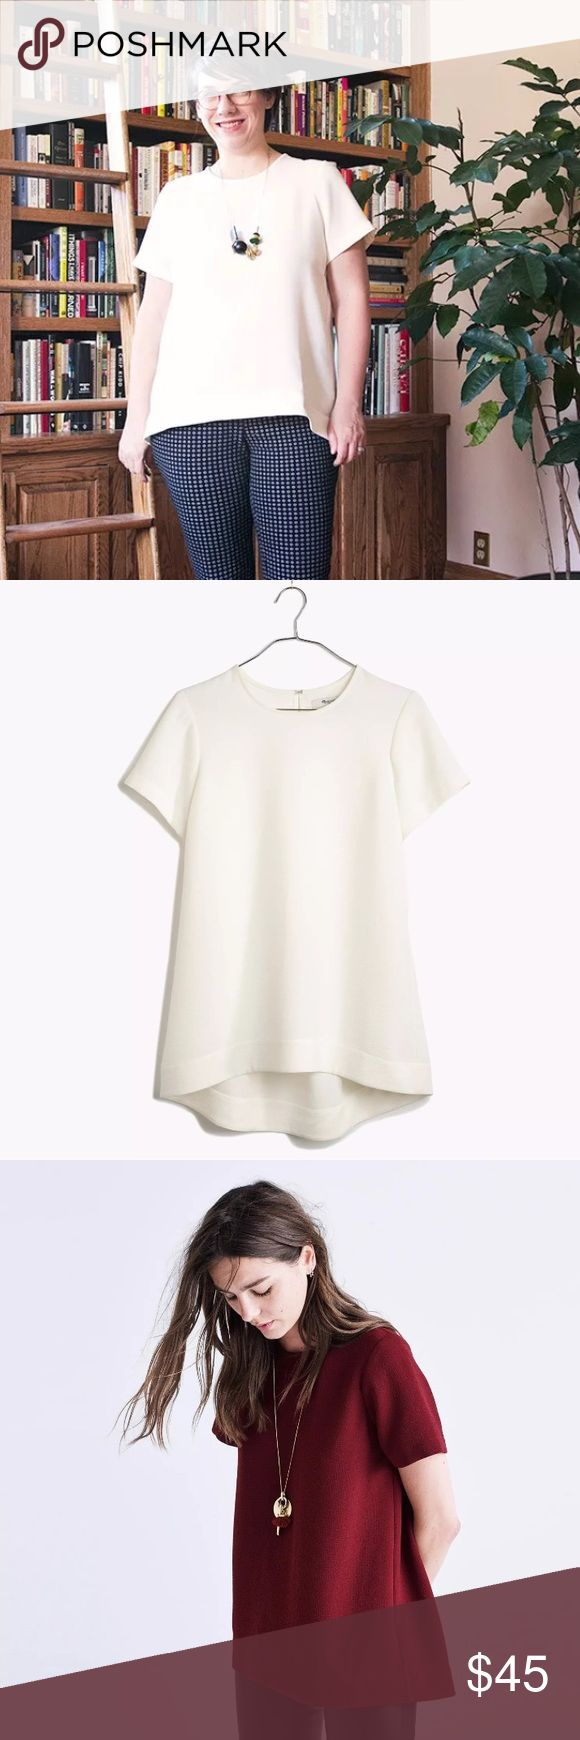 Madewell Tailored Tee White $80 Madewell Tailored Tee White Sz M  With its feminine drape and higher-in-front hem, this is the T-shirt refined.   Slightly swingy, A-line fit. Poly. Machine wash. Import.  Model just to show fit - listing is for white shirt. Madewell Tops